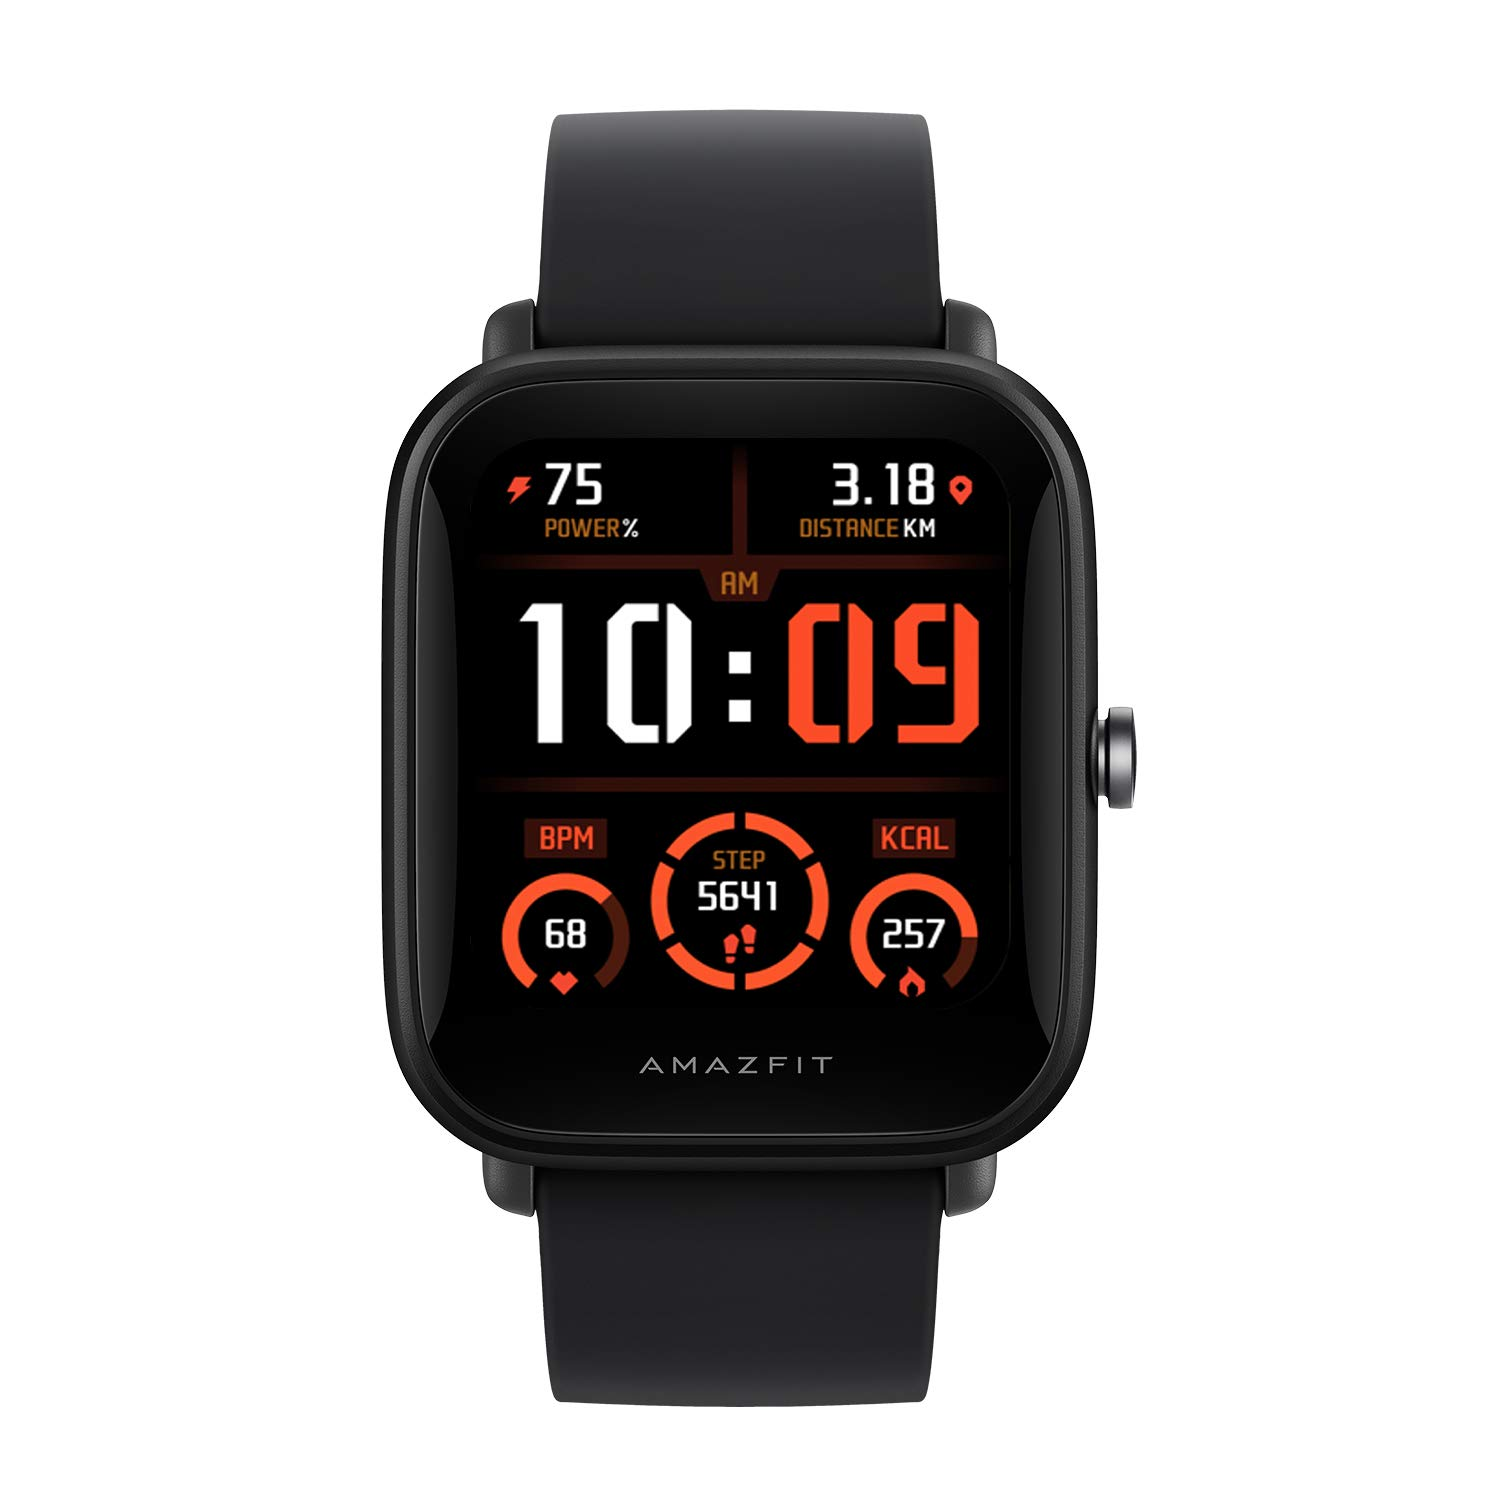 """Amazfit Bip U Pro NYSE Listed Smart Watch with SpO2, Built-in GPS, Electronic Compass, 60+ Sports Modes, 5ATM, Fitness Tracker, HR, Sleep, Stress Monitor, 1.43"""" Color Display (Black)"""